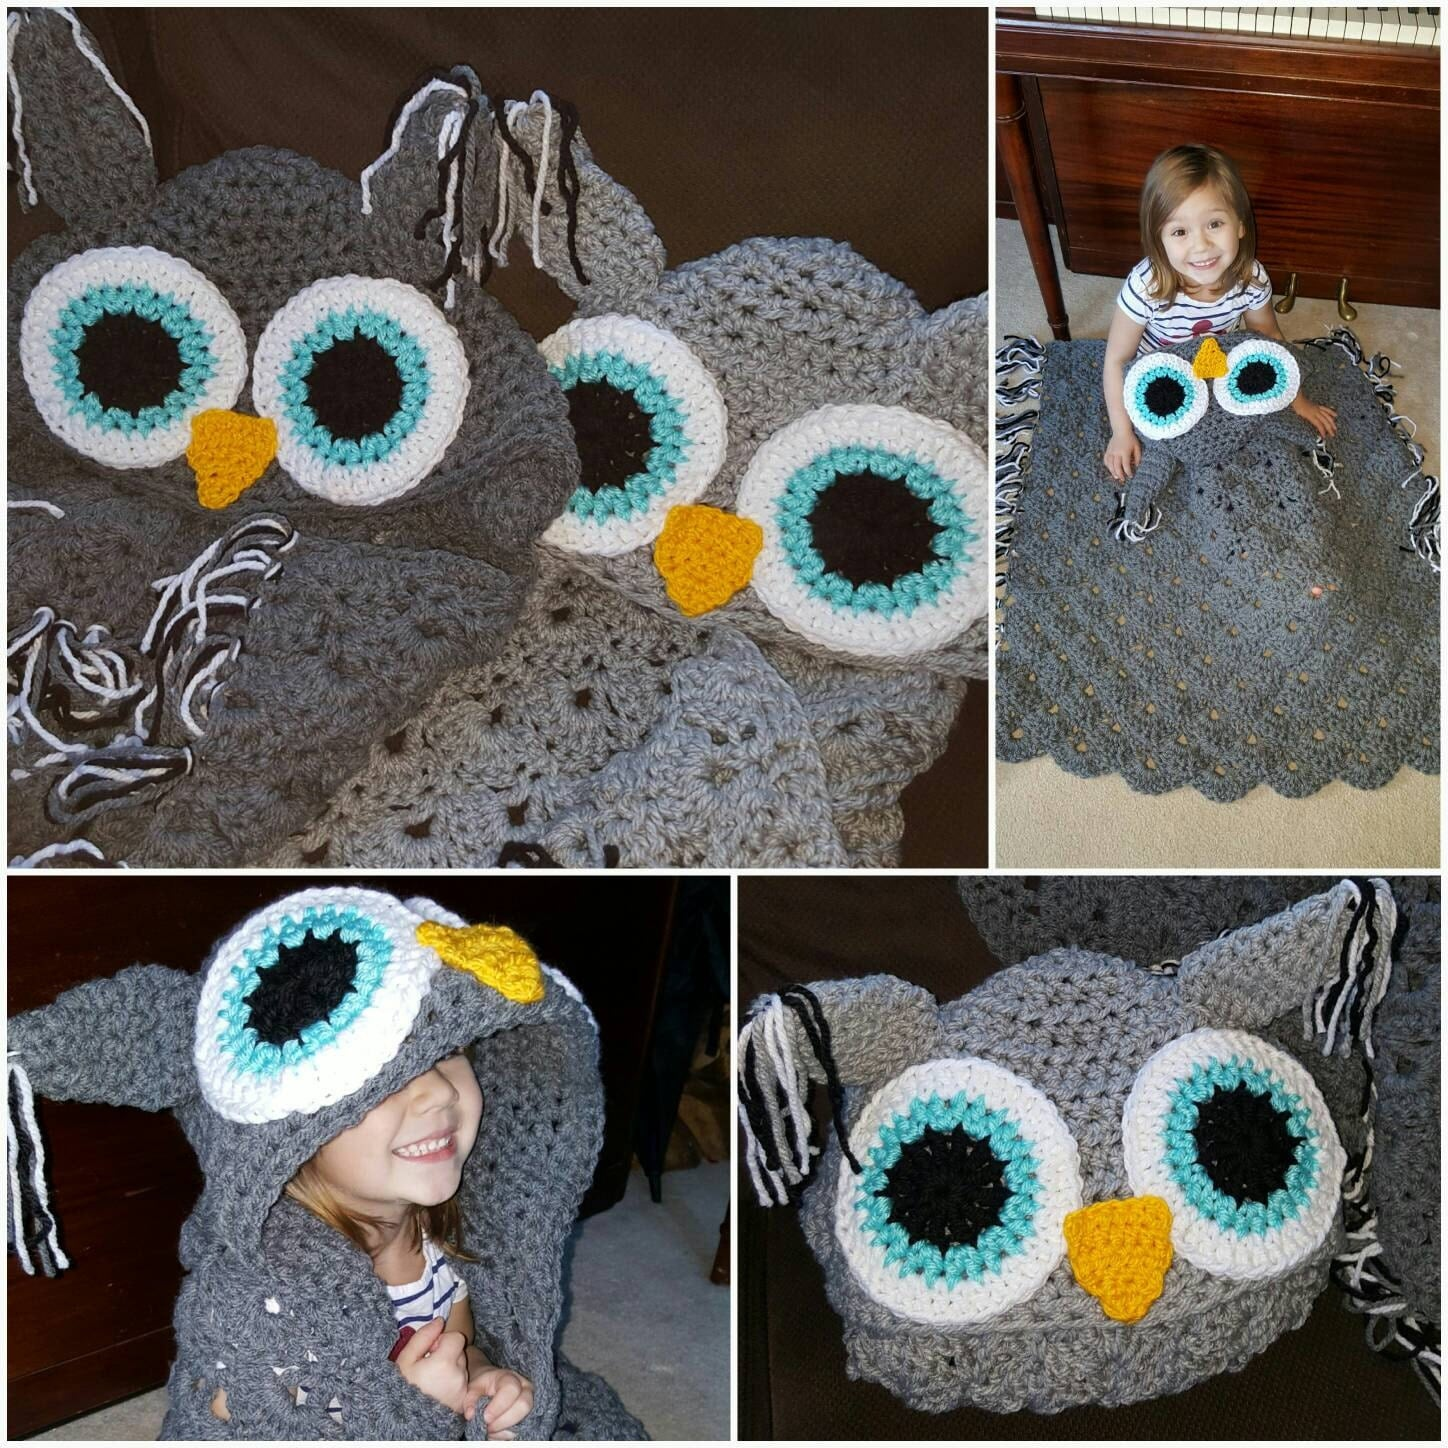 Crocheted hooded owl blanket child hooded owl blanket adult crocheted hooded owl blanket child hooded owl blanket adult hooded owl blanket chunky bankloansurffo Image collections